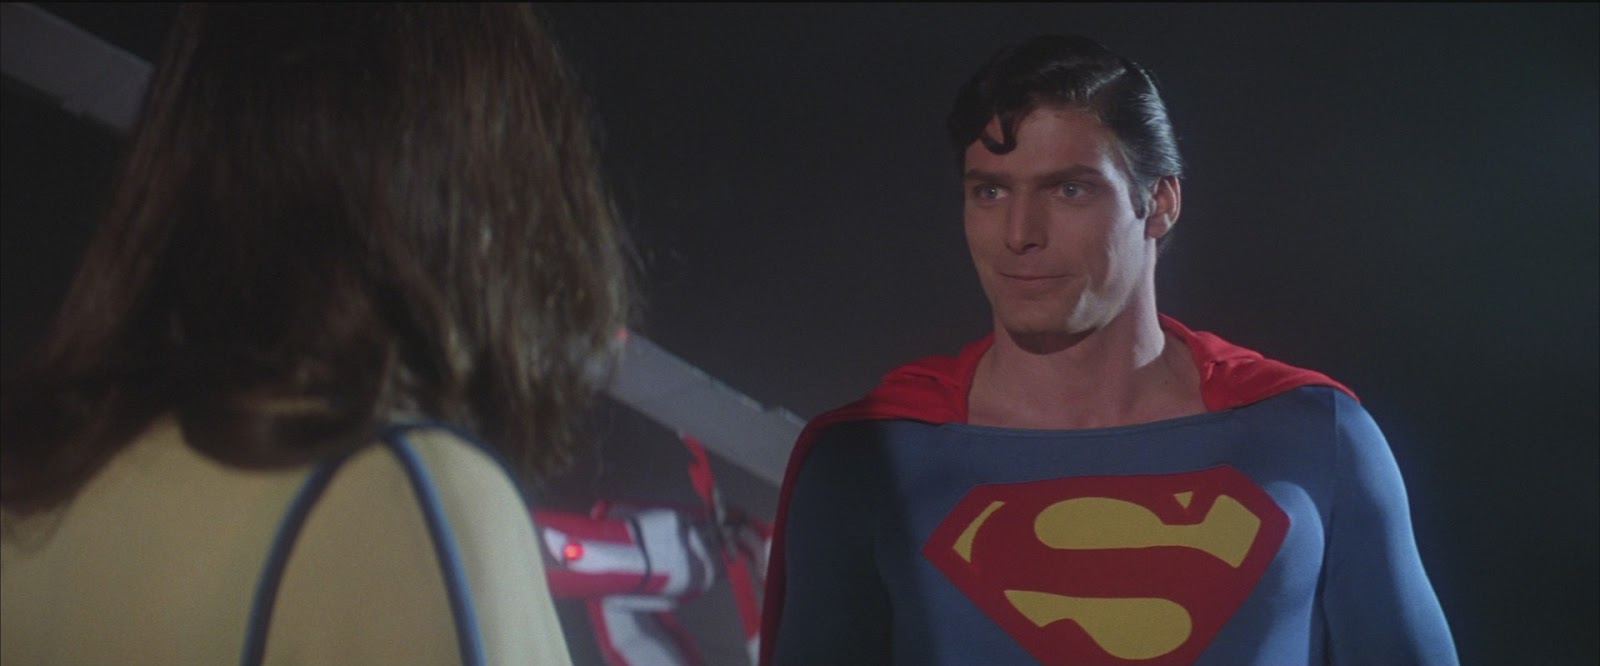 EDITORIAL: Ranking The SUPERMAN Films From Worst To Best